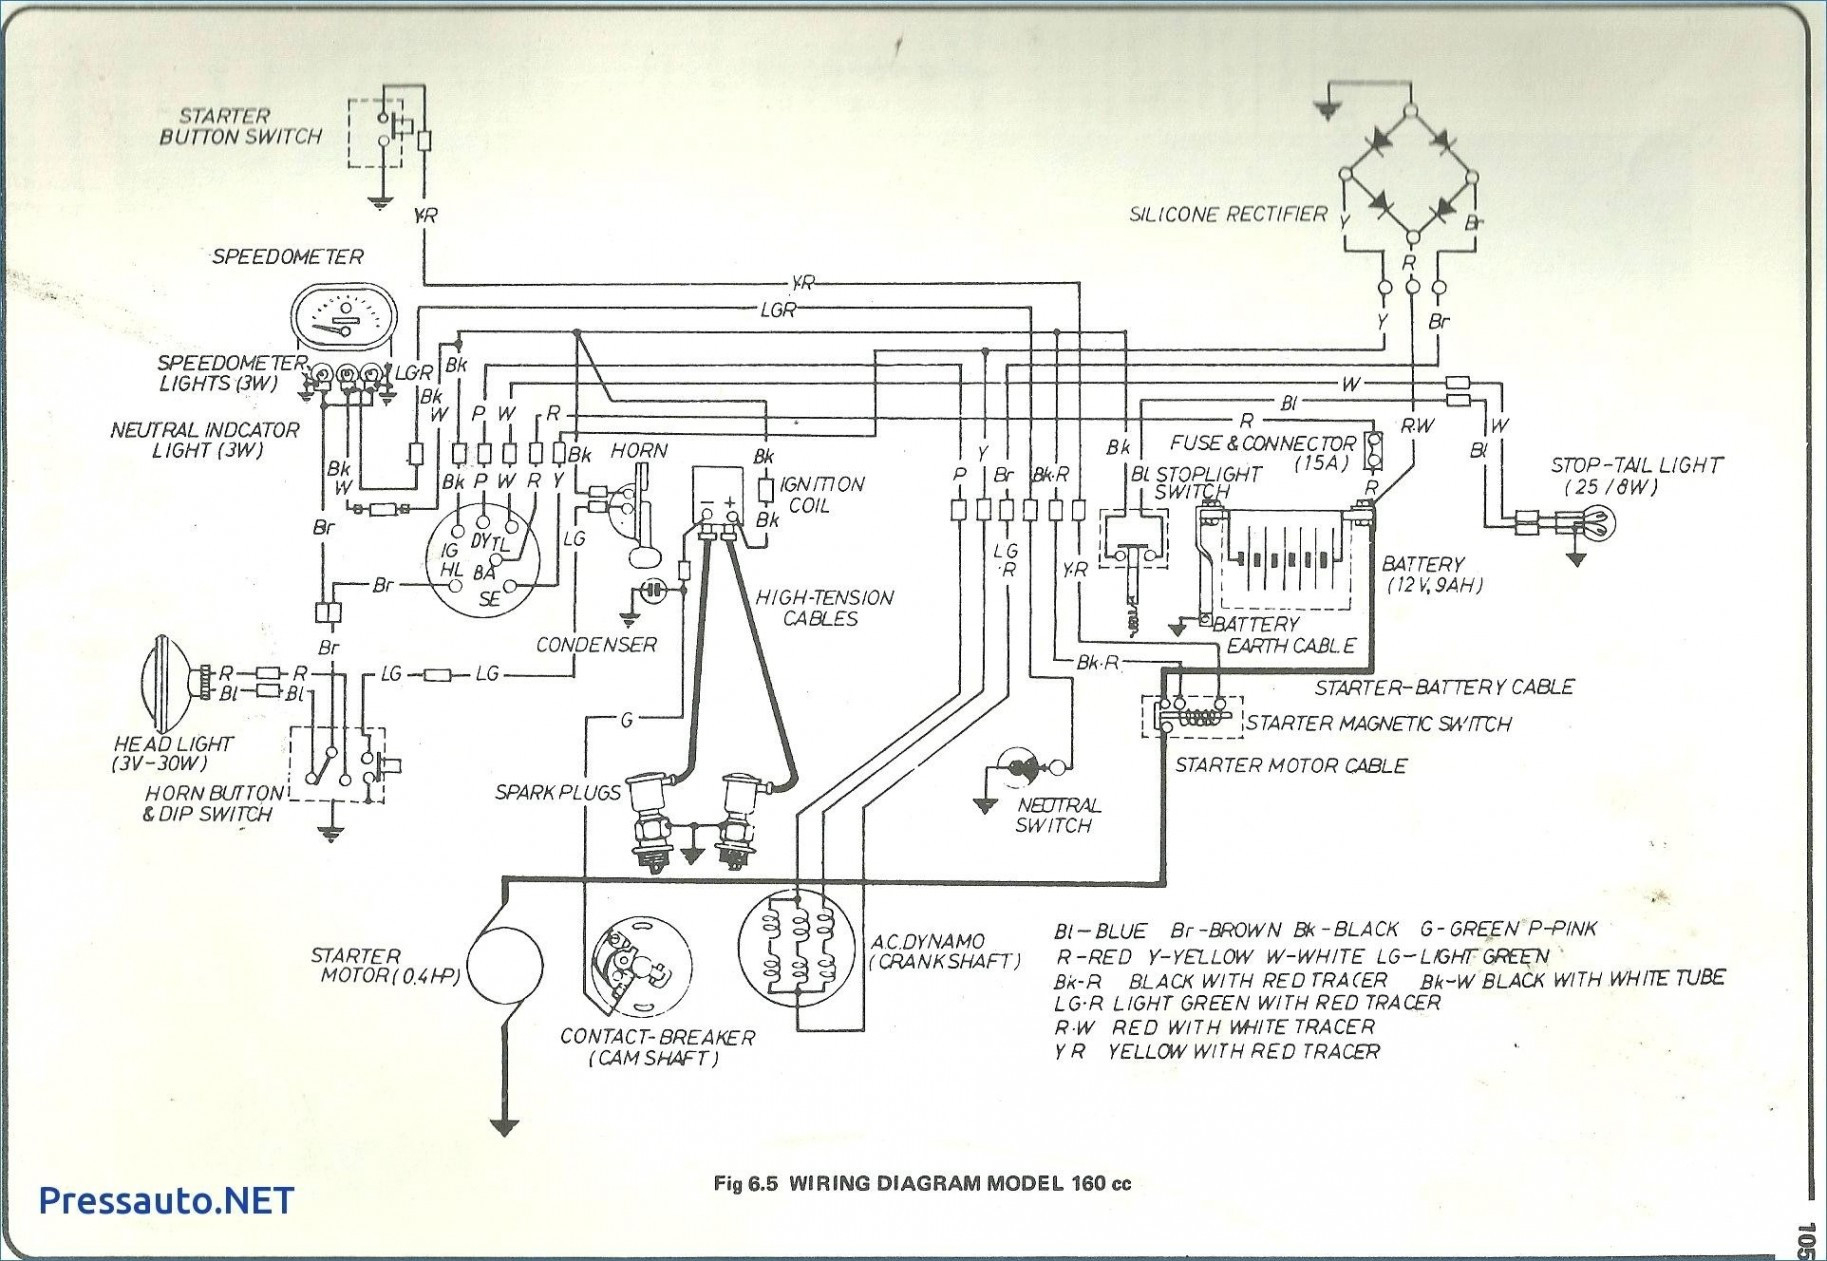 4 Prong Dryer Outlet Wiring Diagram - Pickenscountymedicalcenter - Dryer Plug Wiring Diagram